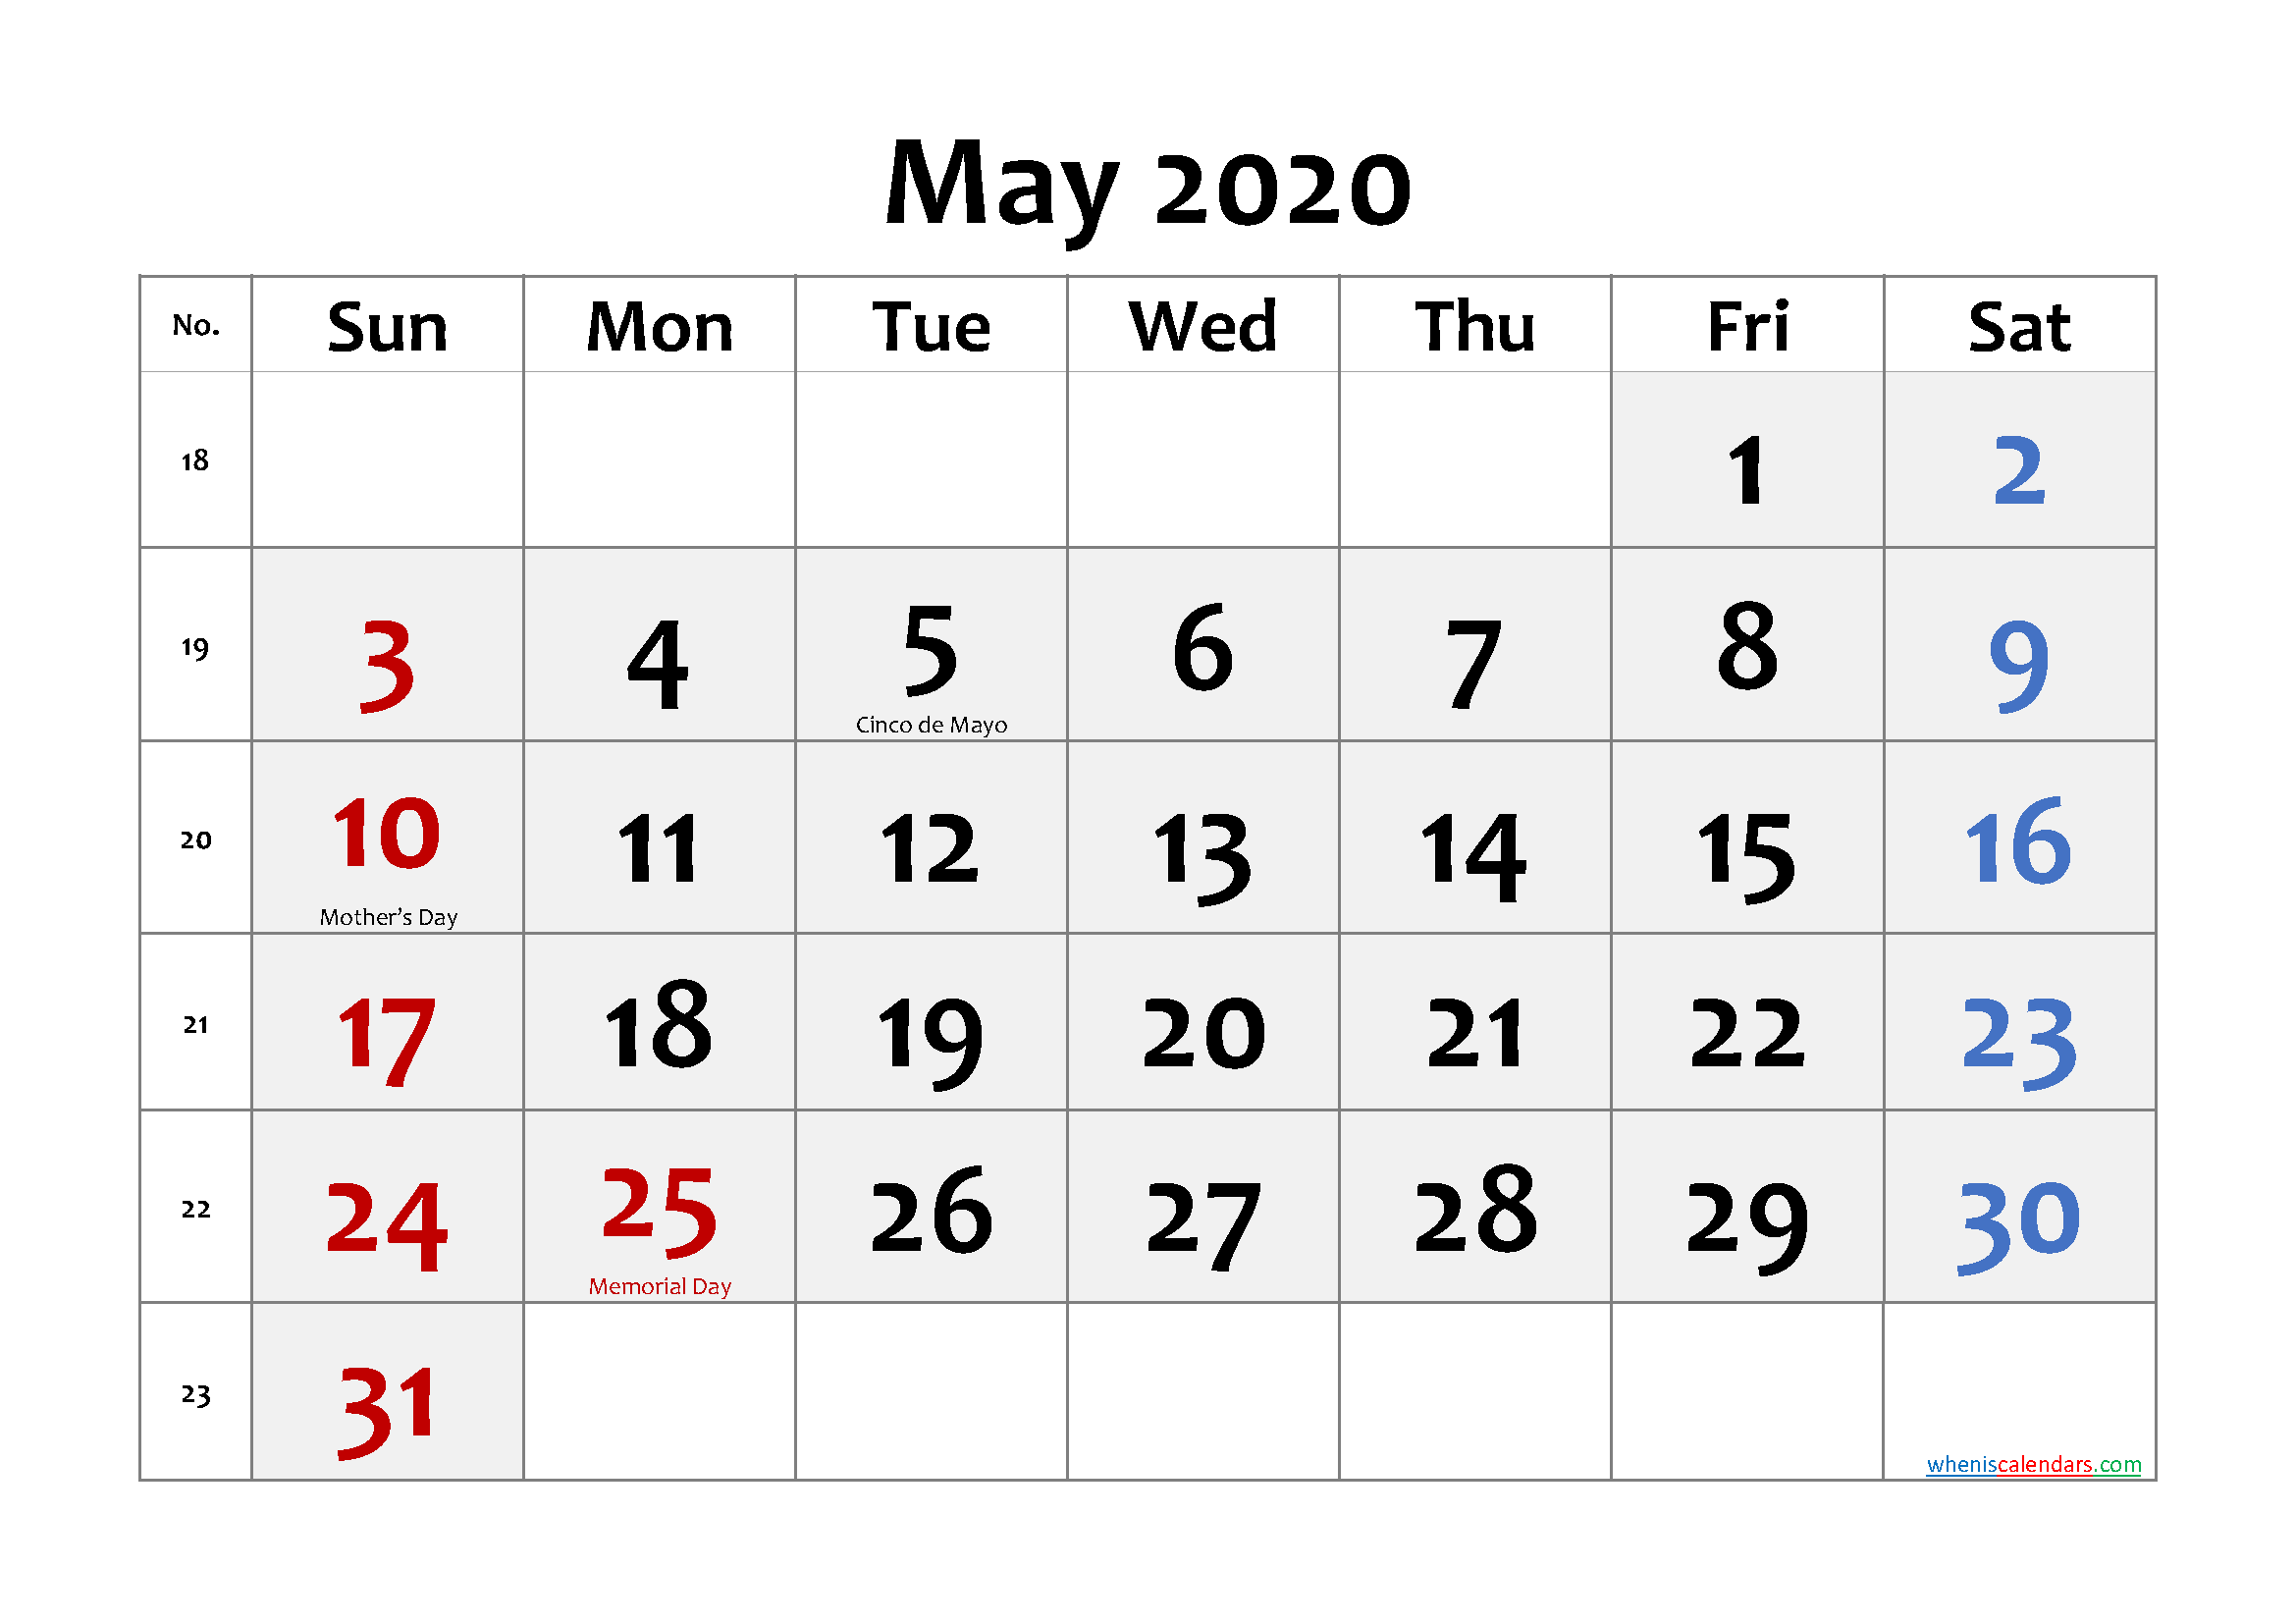 Free Printable MAY 2020 Calendar with Holidays